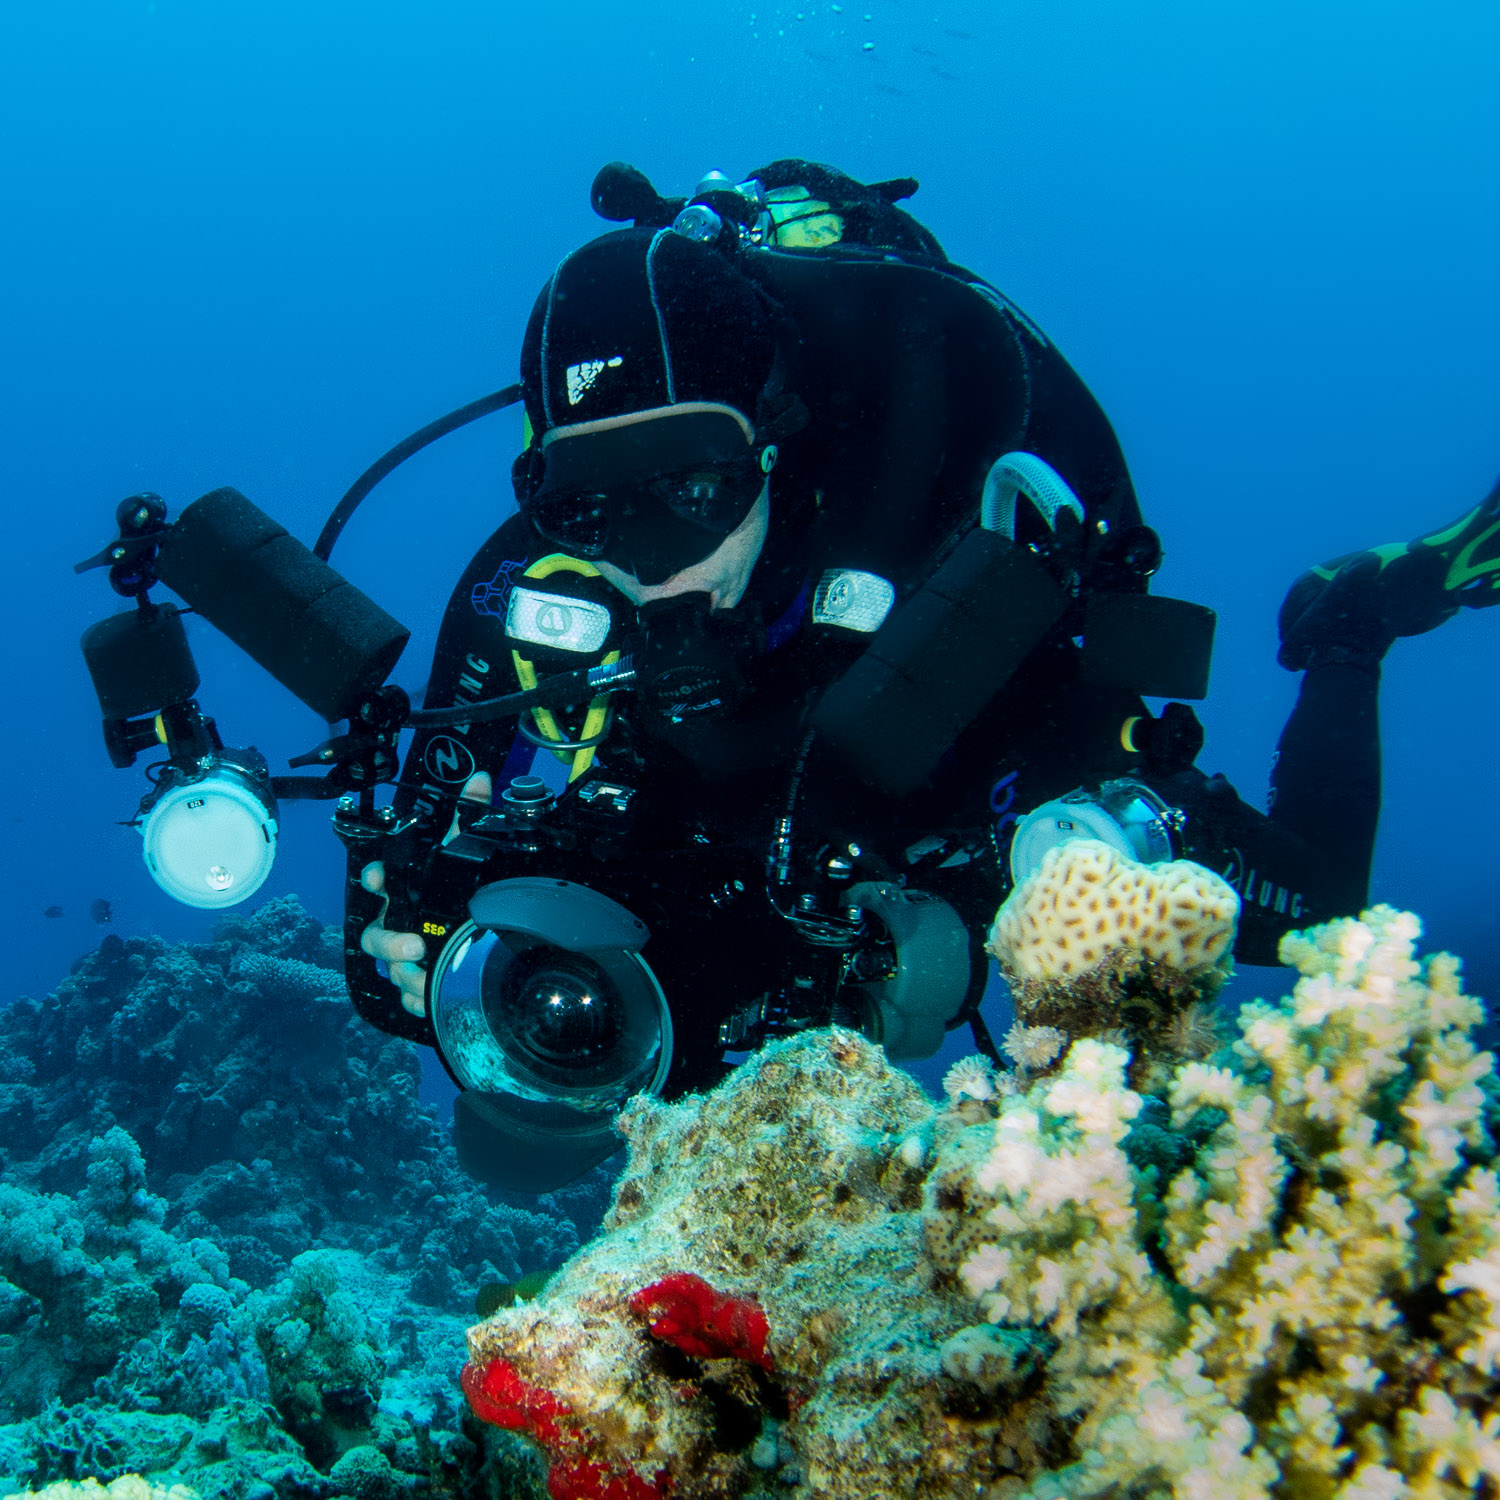 Underwater Photography and Video Course